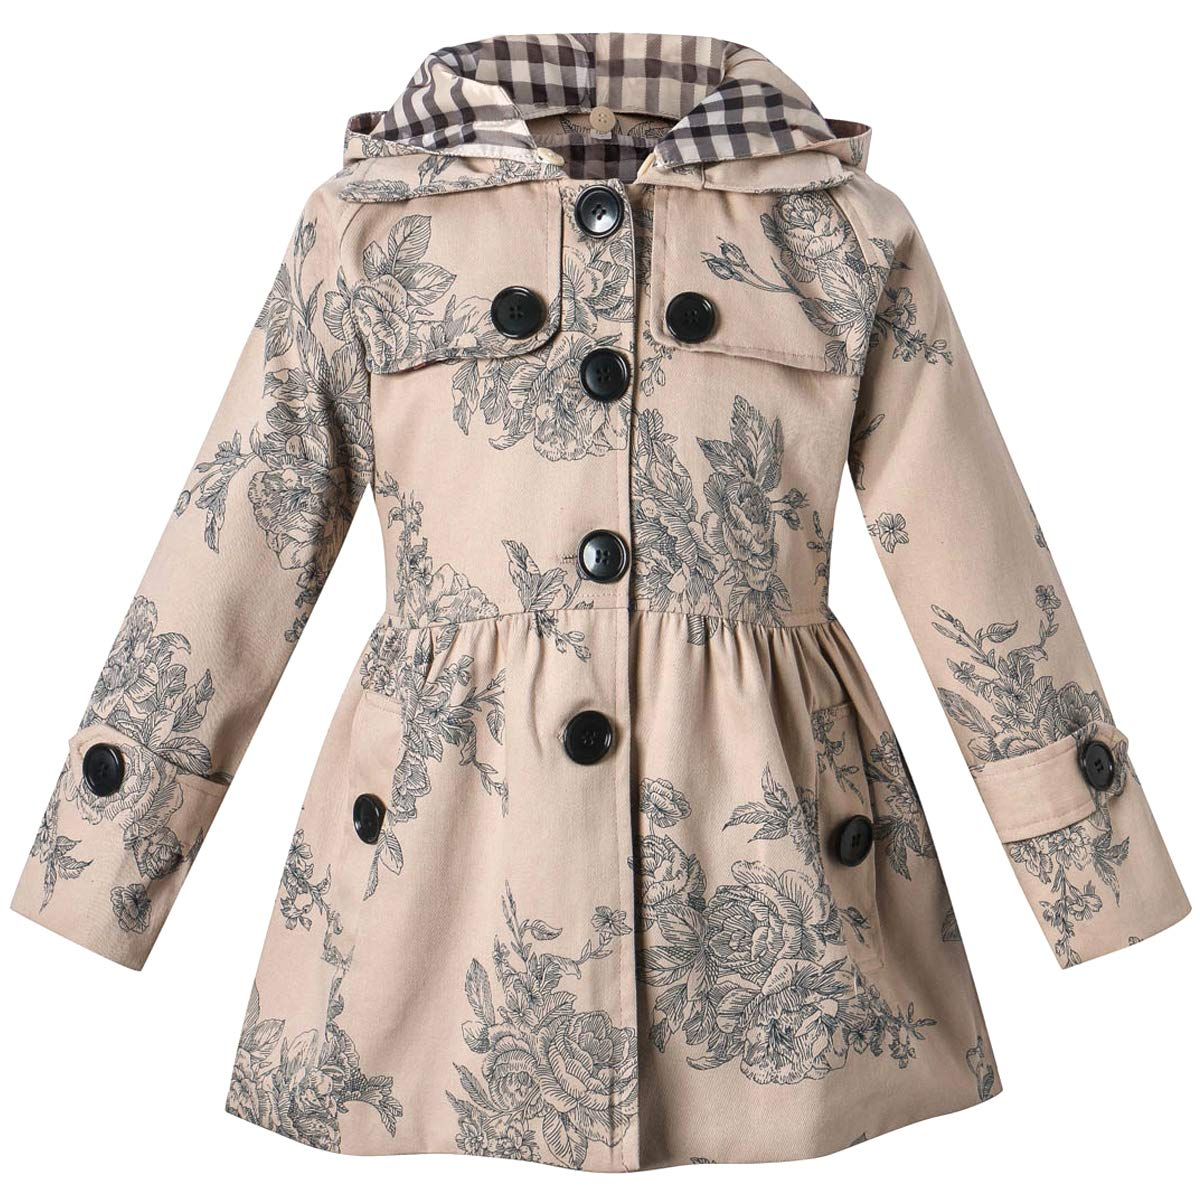 Long Sleeves Vintage Floral Print Chino Cotton Hooded Hoodie Trench Coat Outerwear Windbreaker for Little Girls & Big Girls, A-Flower Khaki, 7-8 Years=Tag 140 by BINPAW